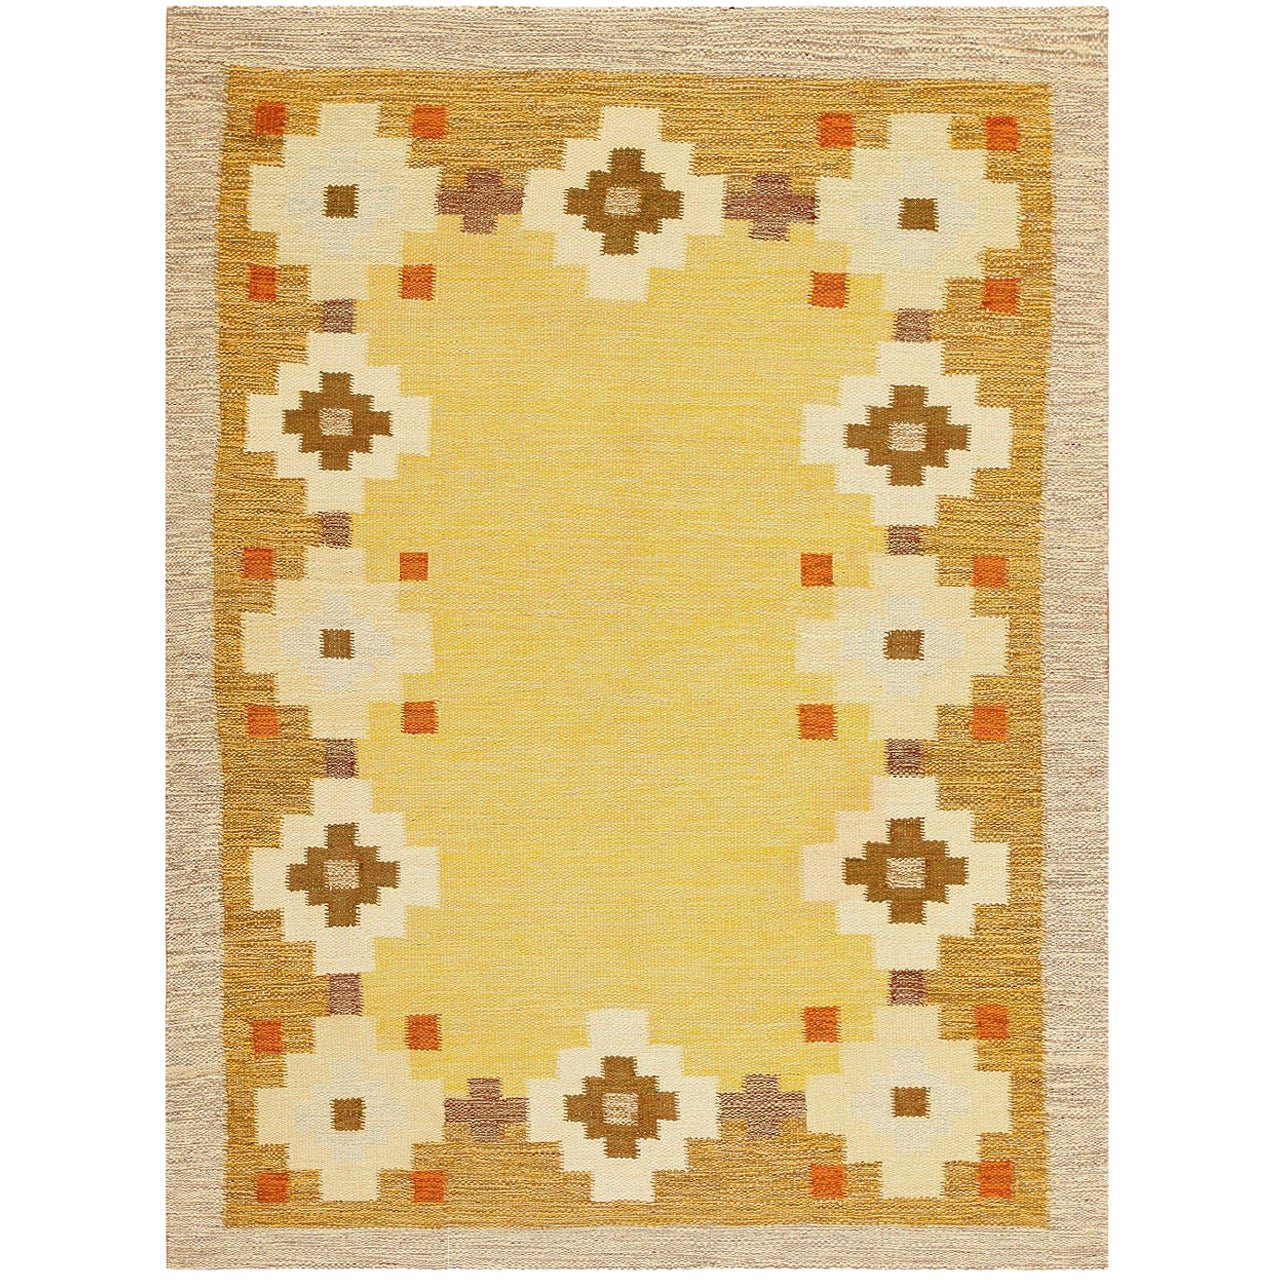 Scandinavian Swedish Kilim Carpet. Size: 5 ft 6 in x 7 ft 4 in (1.68 m x 2.24 m)